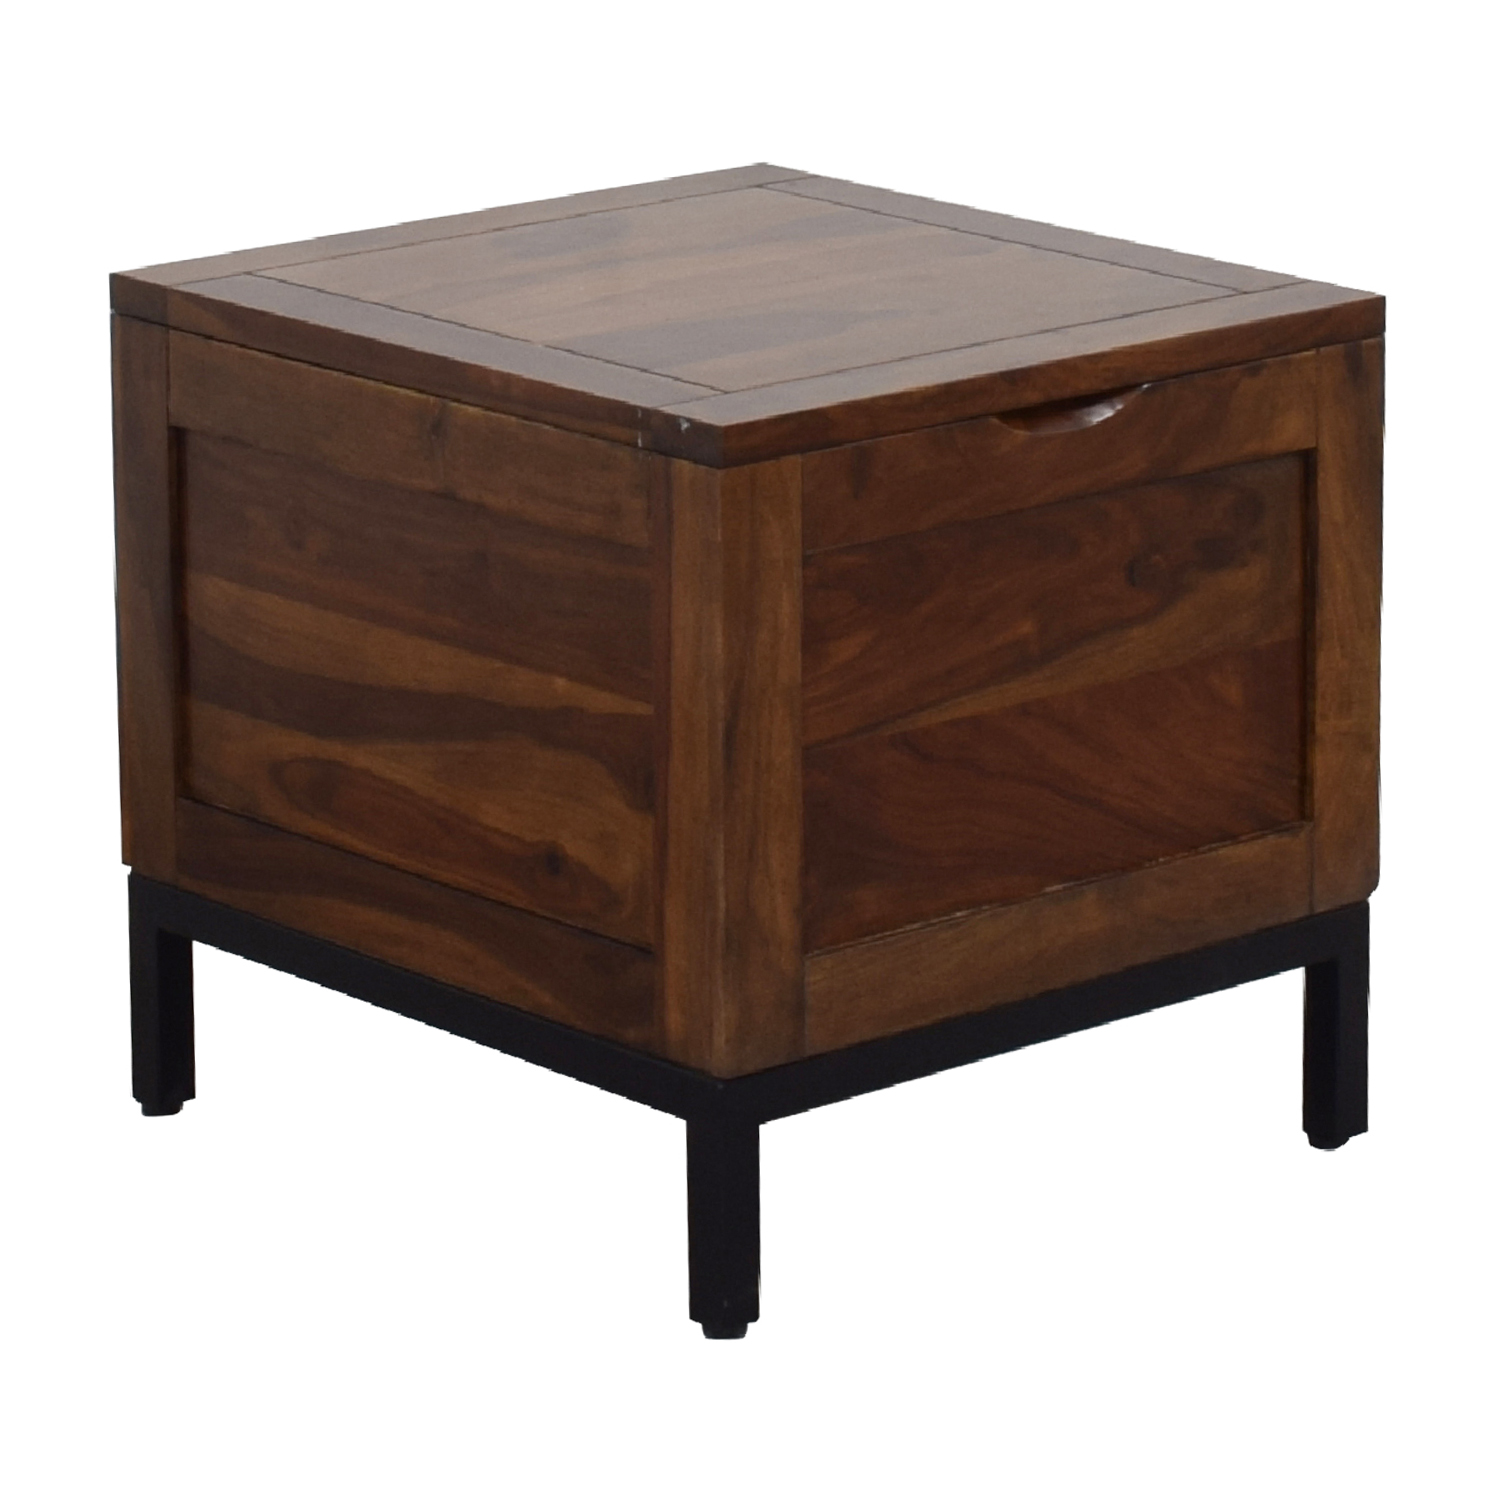 Crate & Barrel Crate & Barrel Tucker Side Trunk Table used